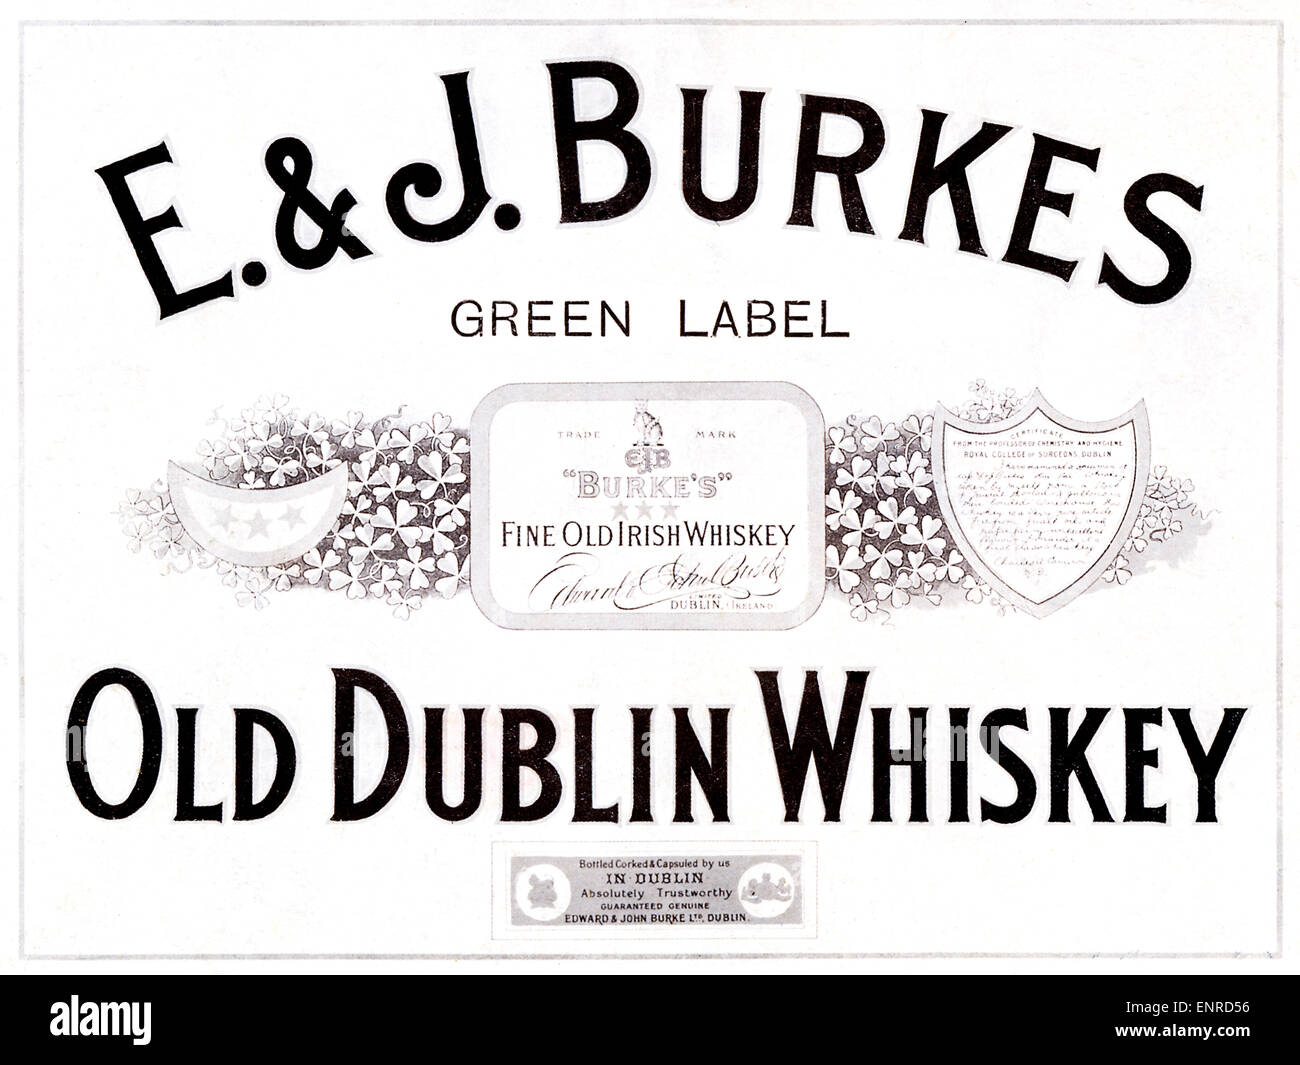 E&J Burkes Old Dublin Whisky, 1916 advert for the Irish whisky distillery founded in 1849 in the Irish capital - Stock Image